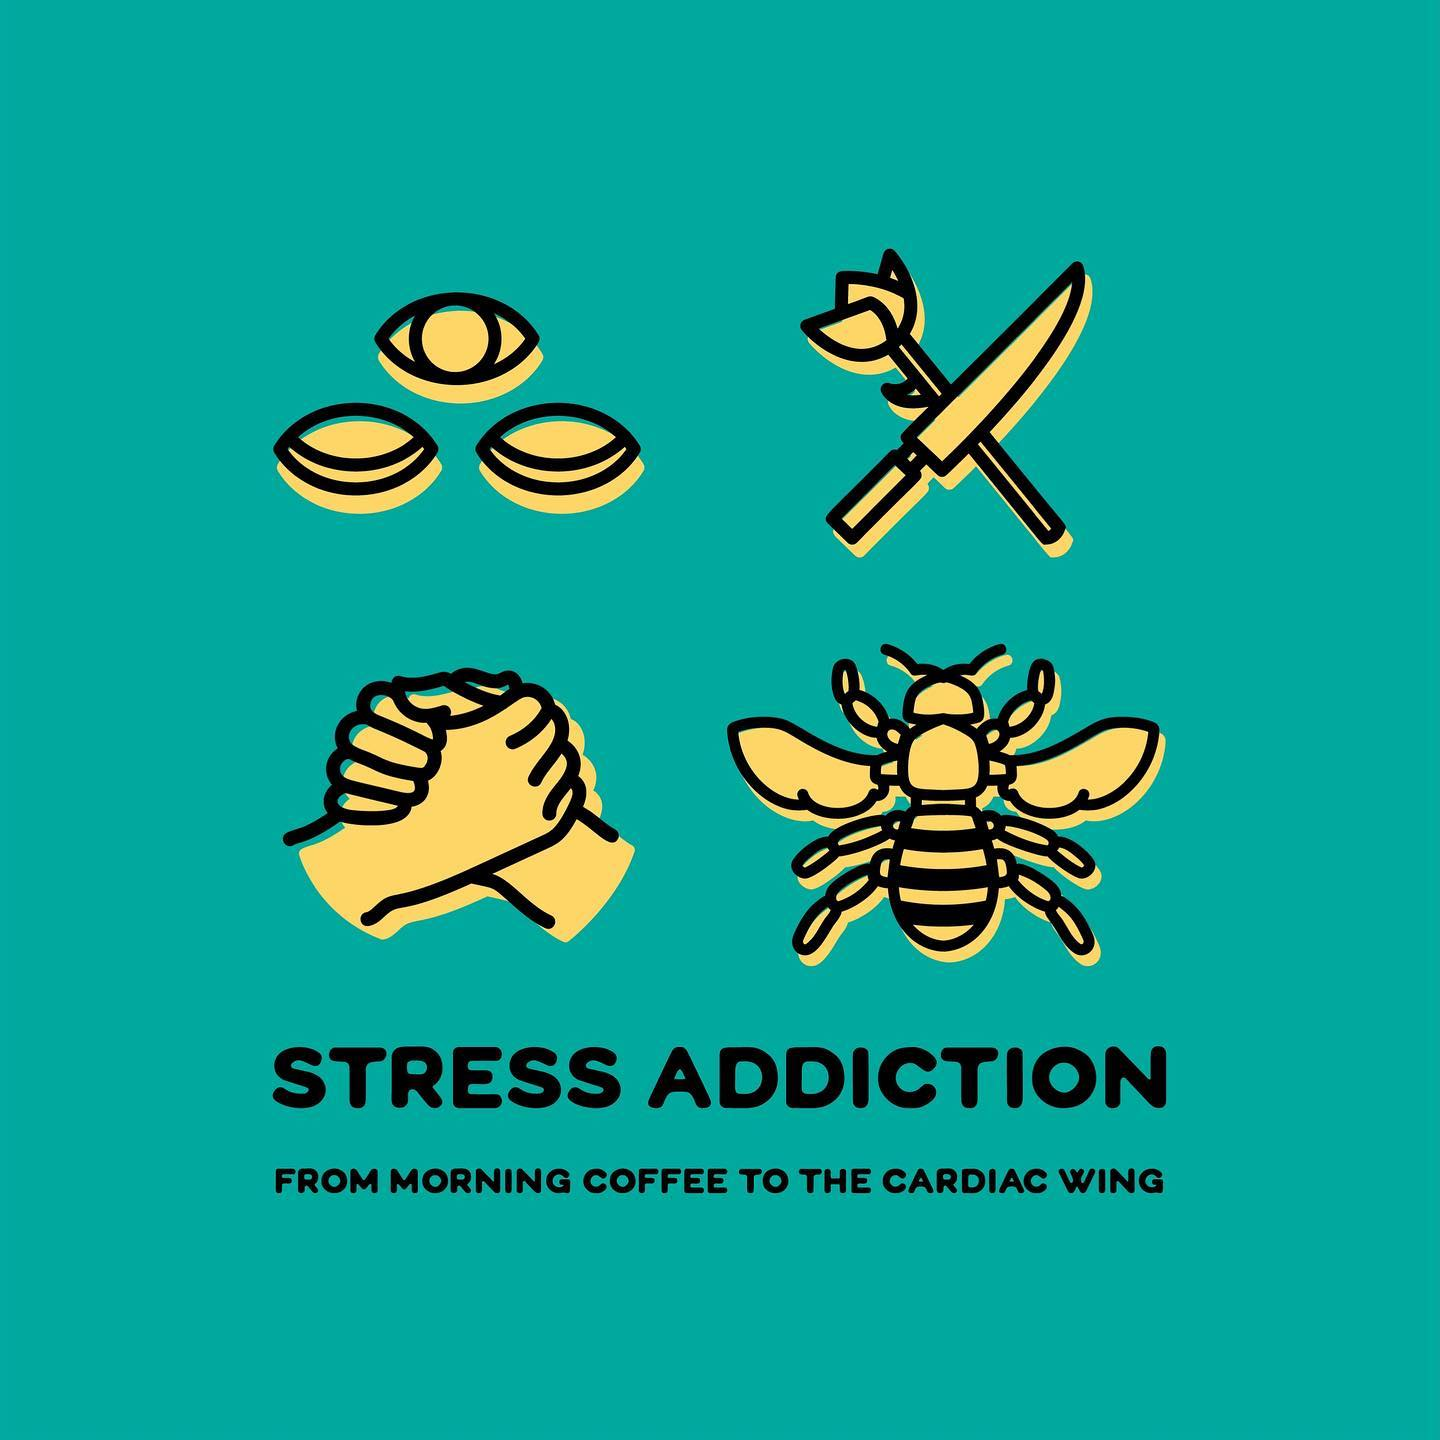 Stress Addiction talk promotional graphic with icons